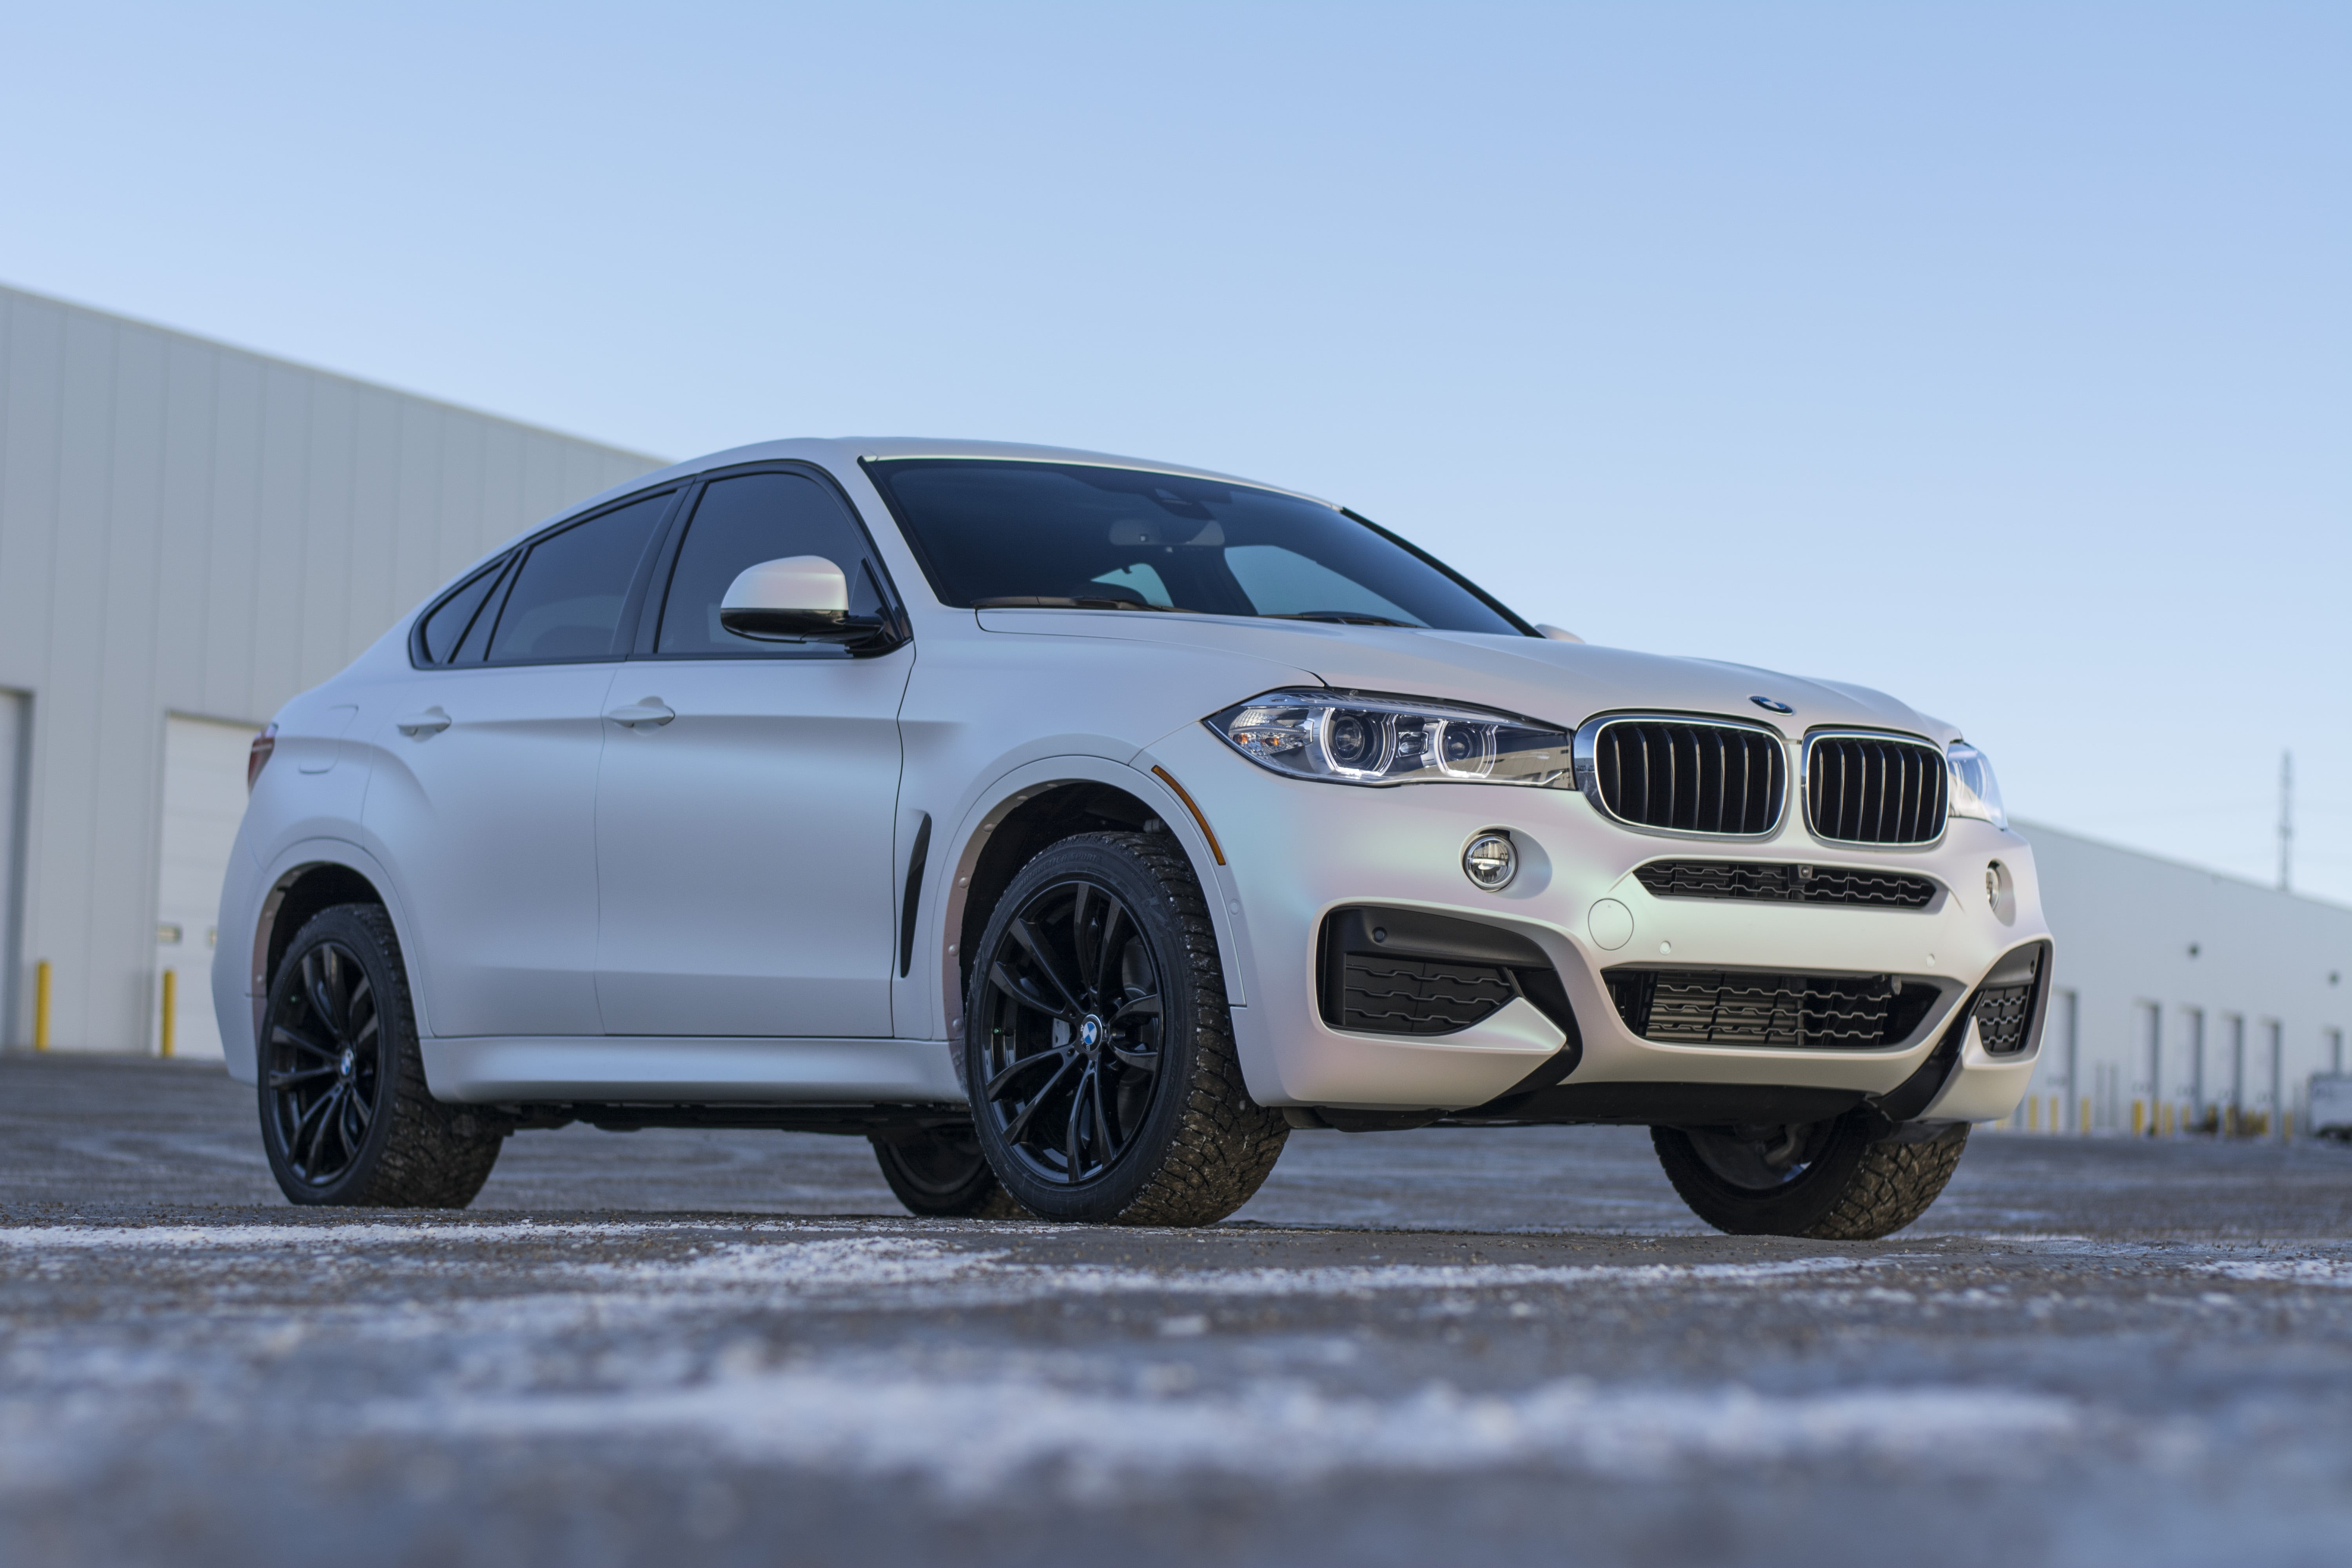 BMW X8 wrapped in KPMF Matte Aurora Pearl from front left.